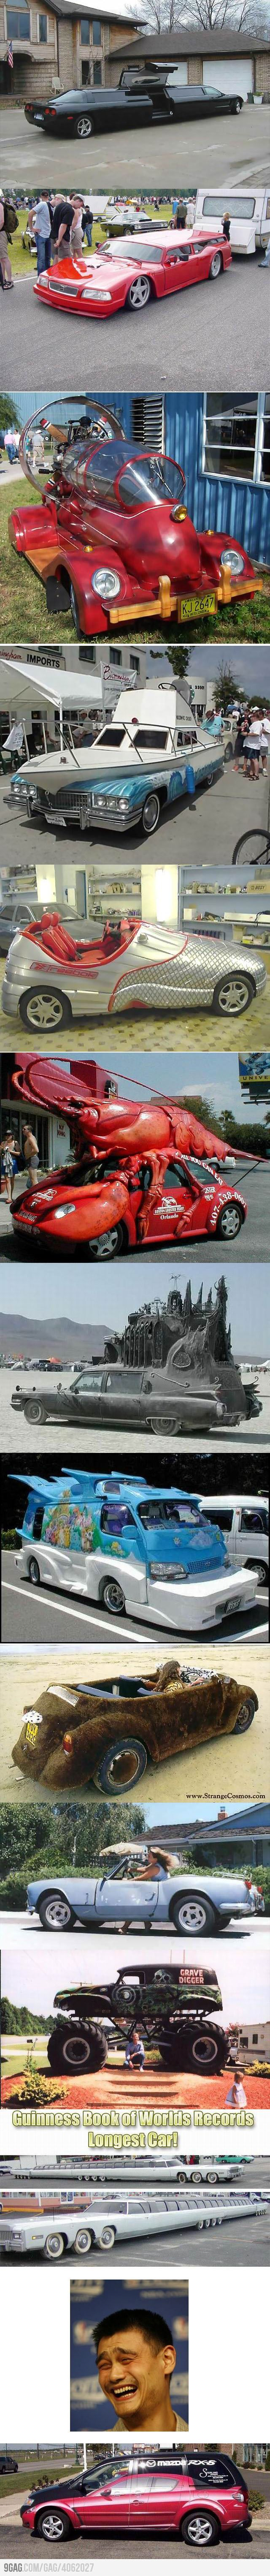 Ship Your Car Now Here is how we Deliver. #LGMSports deliver it with http://LGMSports.com Veículos Bizarros by Daniel Alho / weird cars